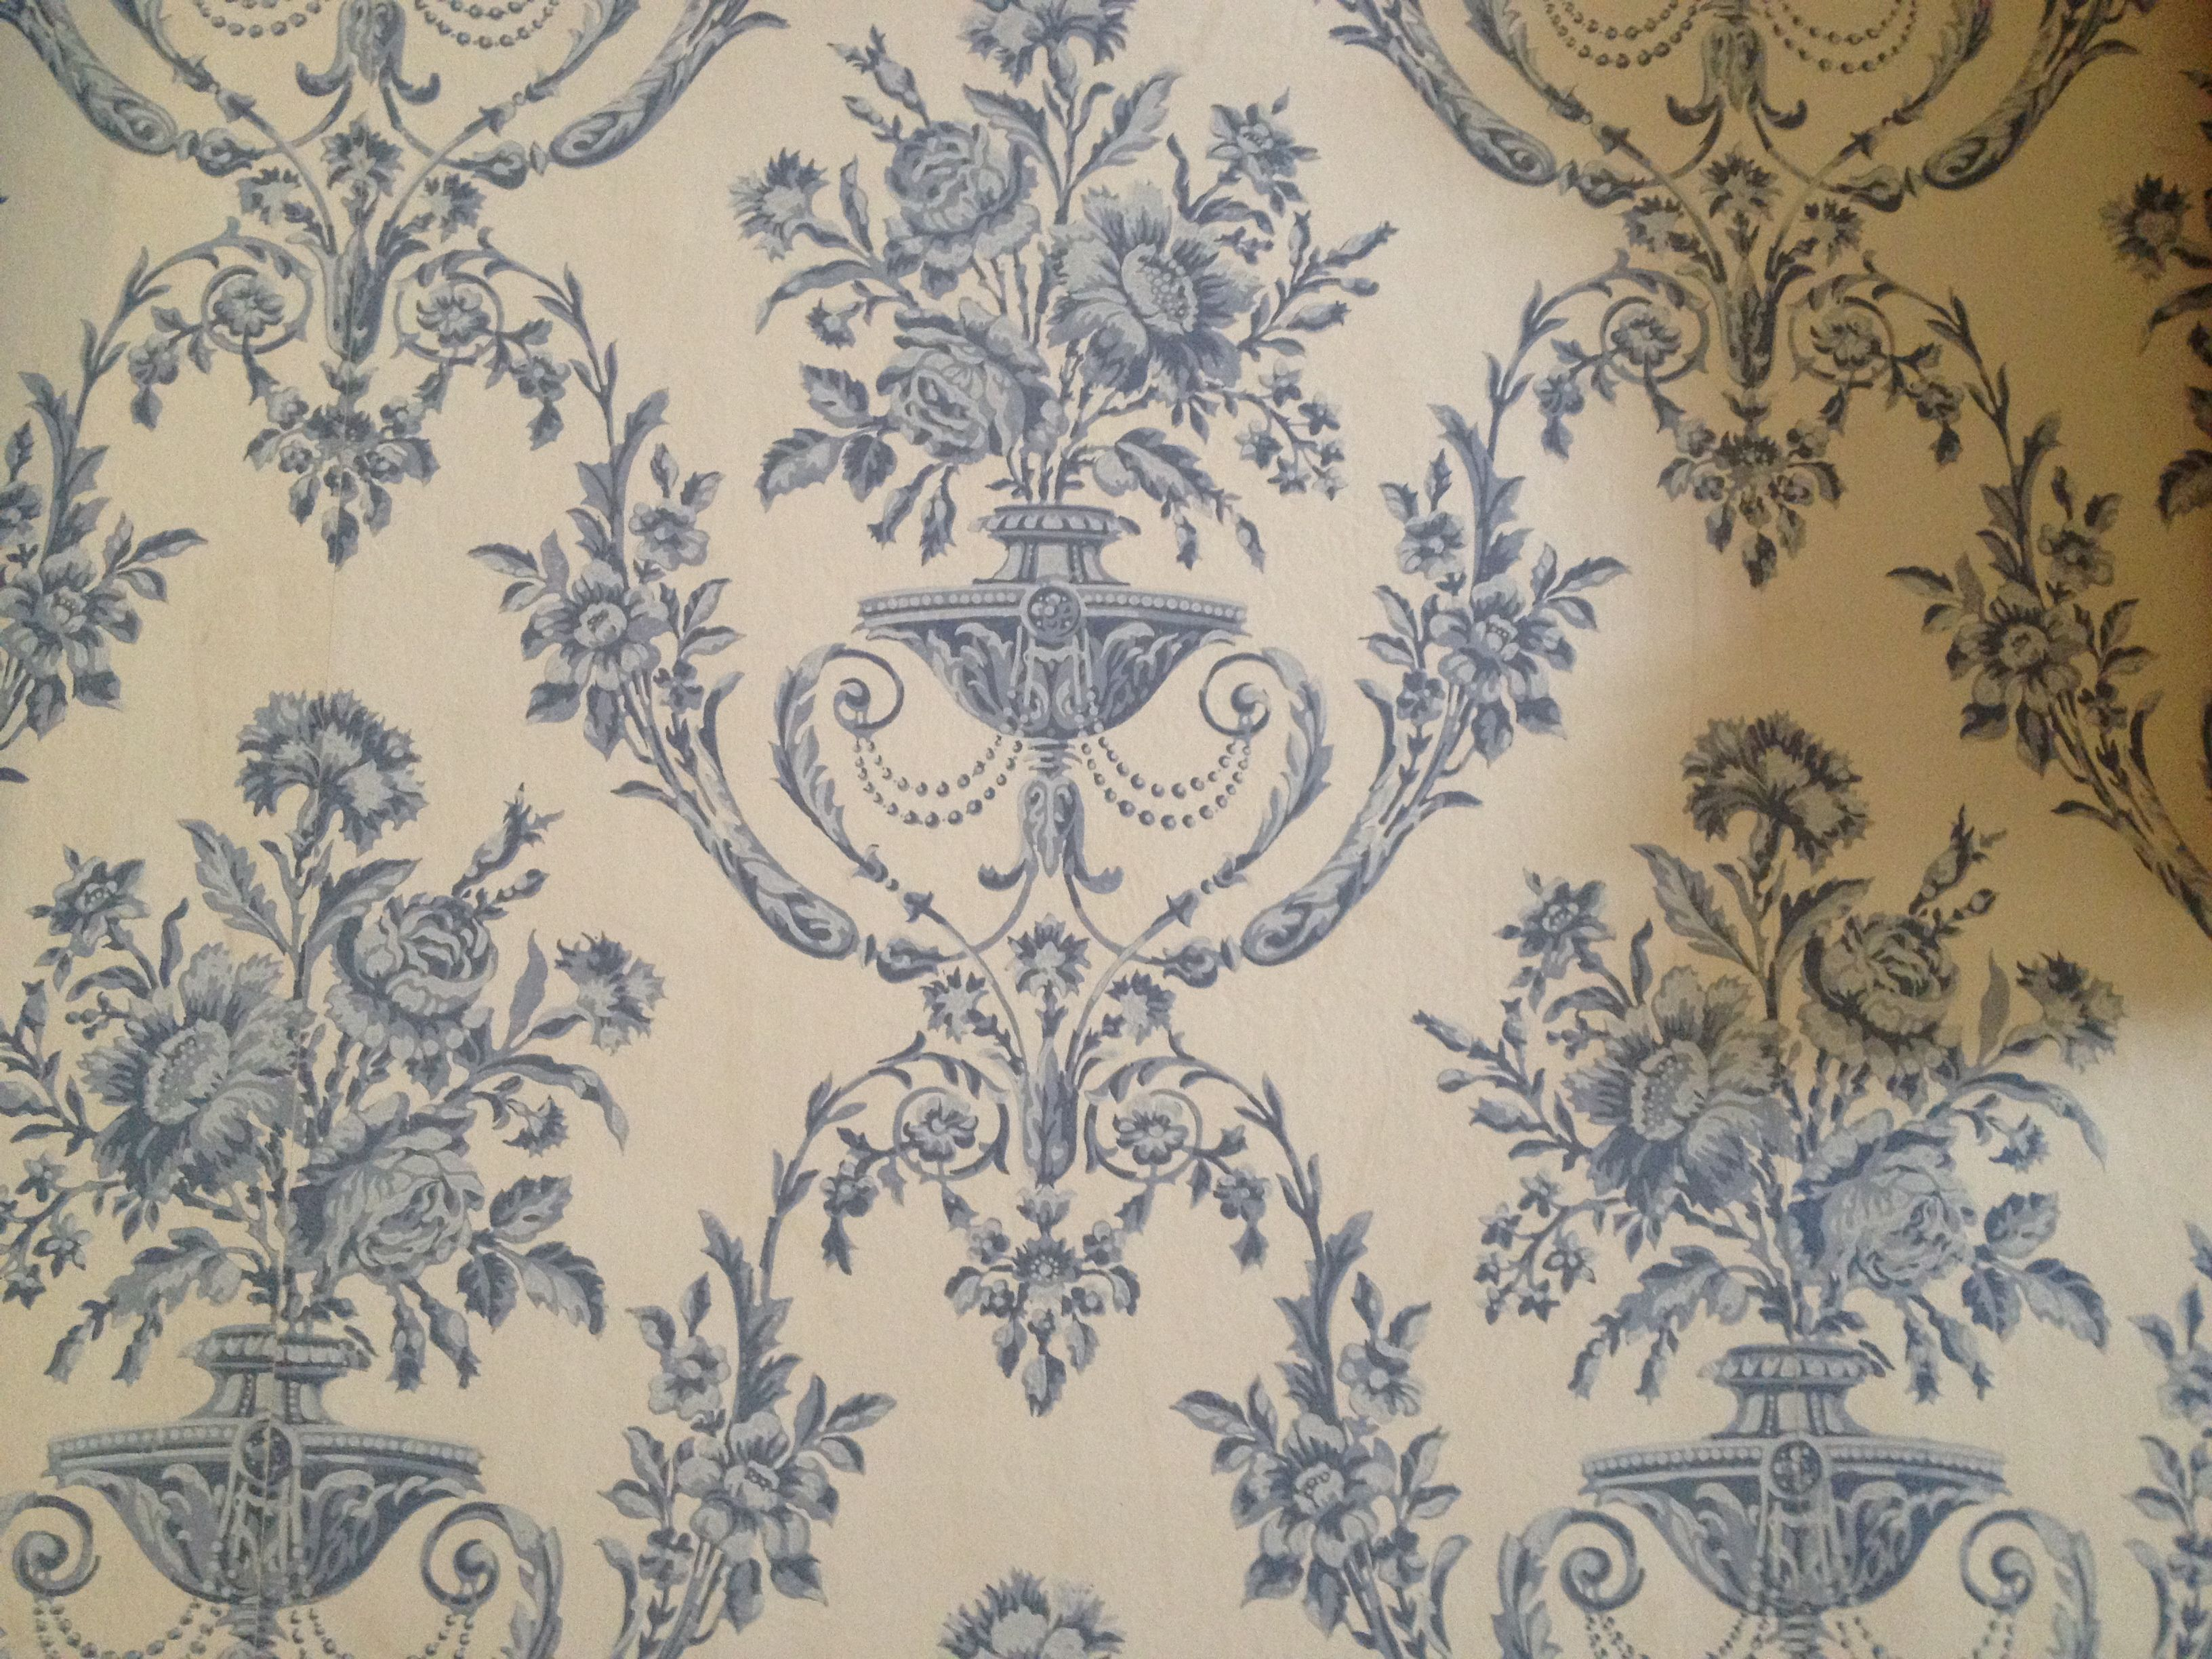 Wallpaper at Petworth House, West Sussex Artwork, Pearl